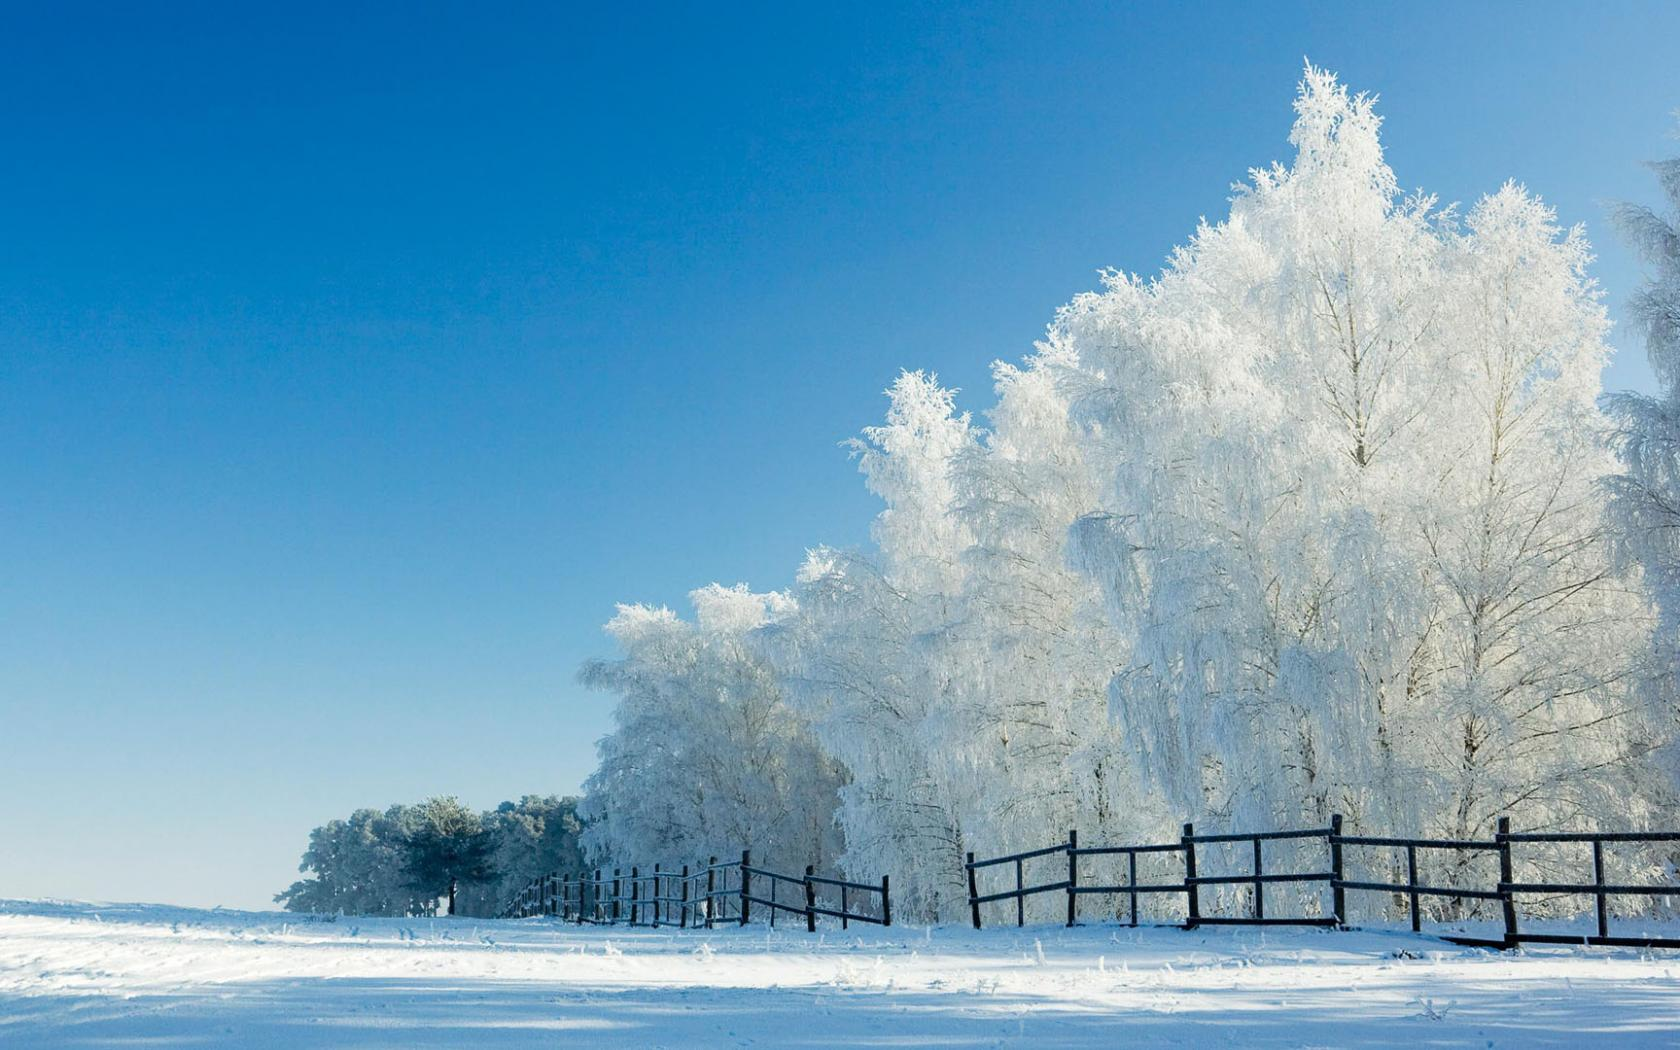 HU-Snow-Snow-HD-Pics-Free-Large-Images-wallpaper-wpc900243